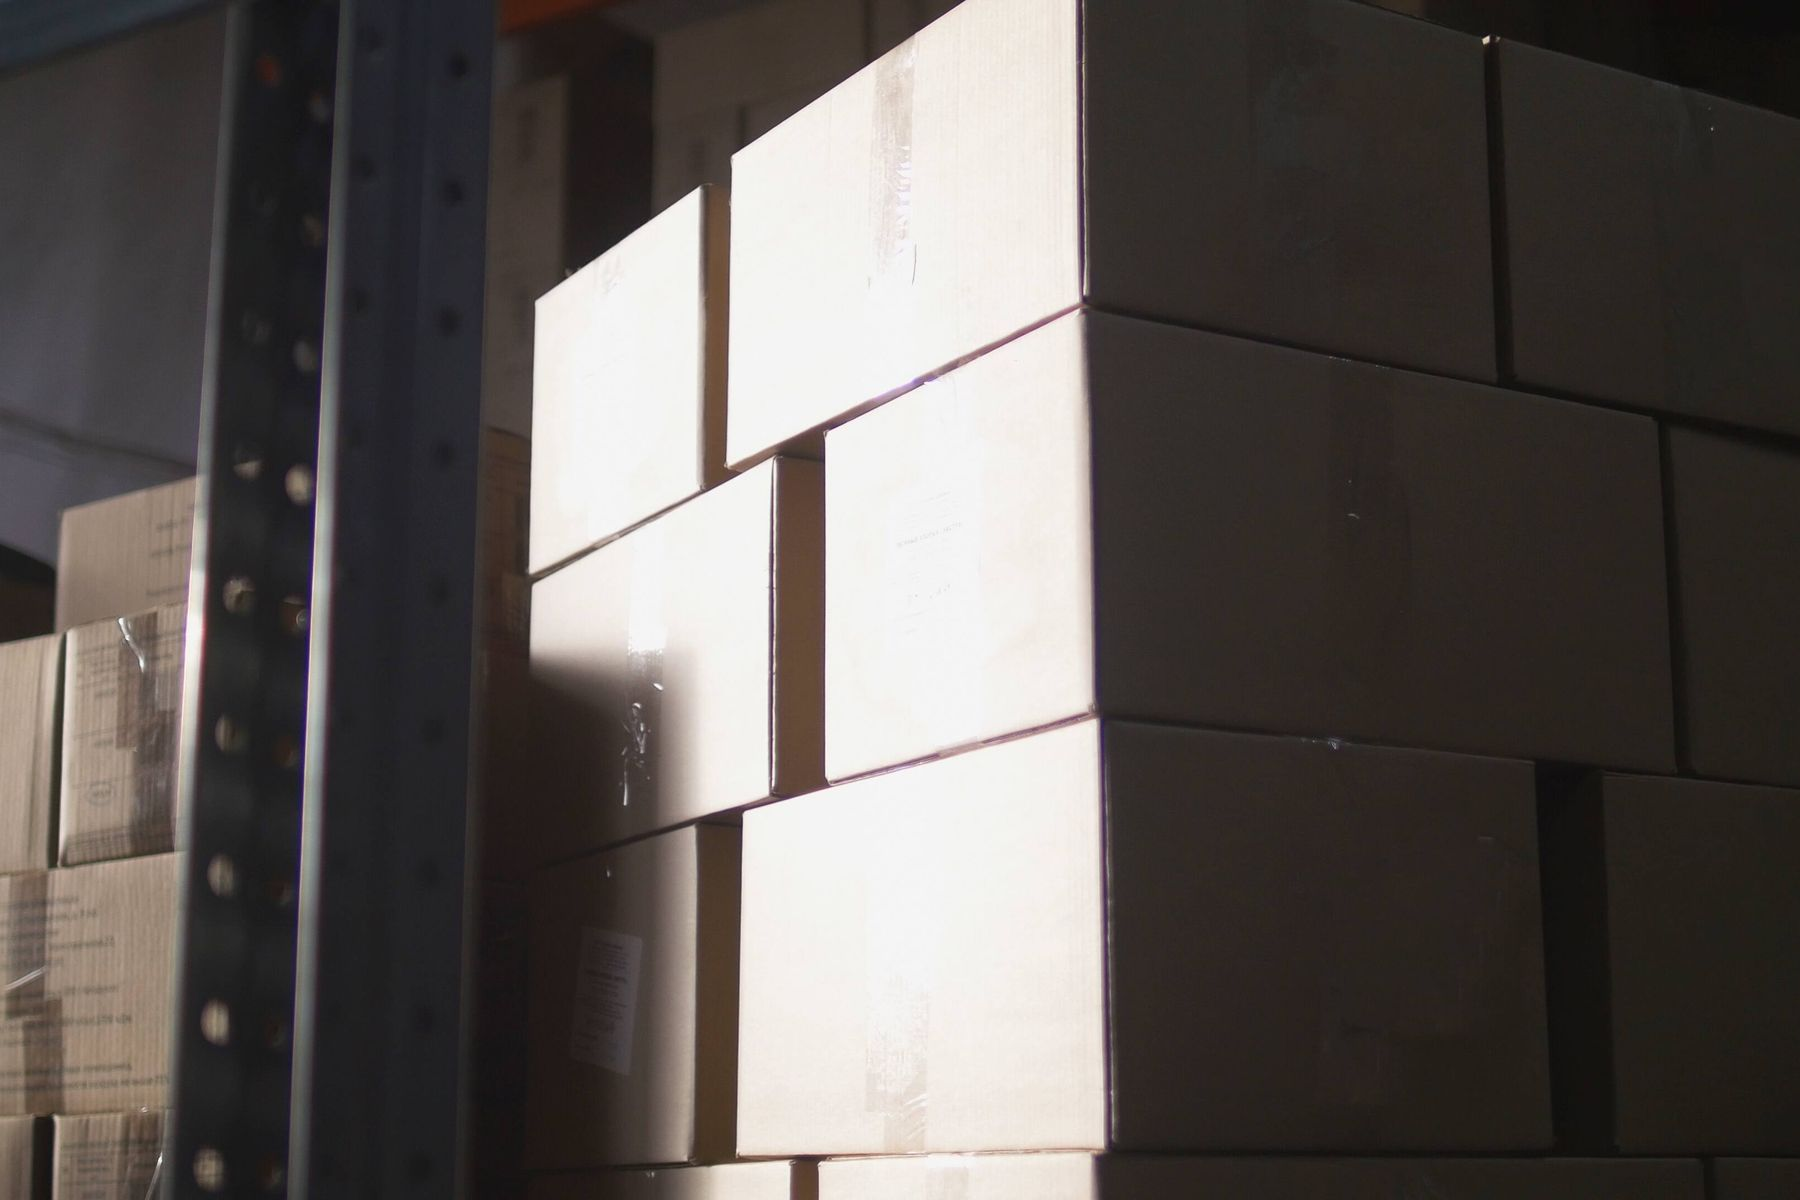 How to Clean Cardboard Box Stains from Your Storage Space | Cleanipedia